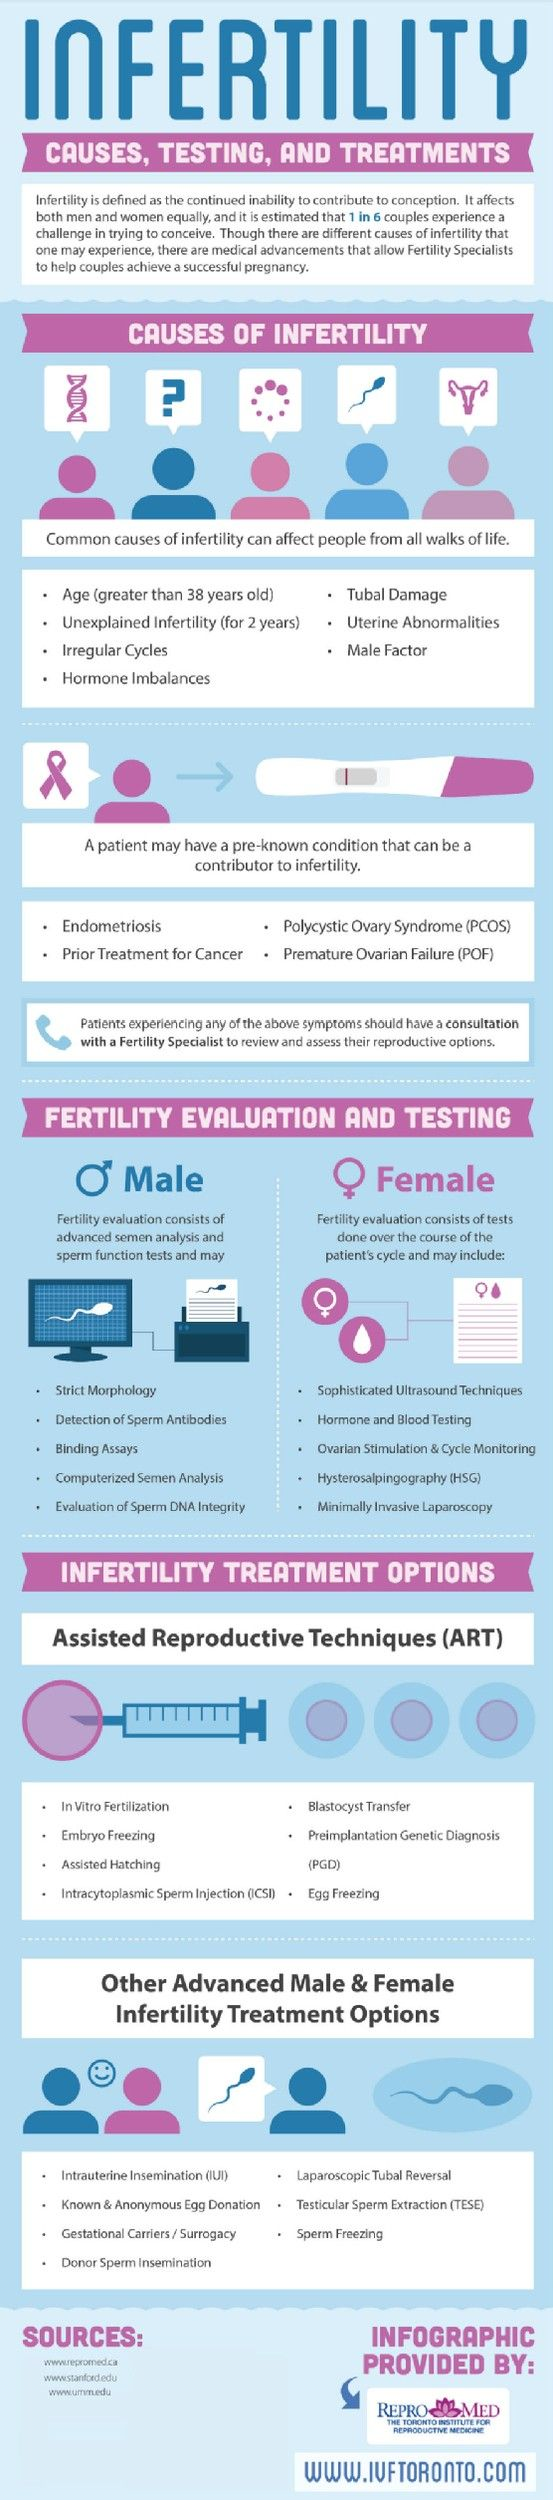 During a male fertility evaluation, sperm is analyzed using function tests such as binding assays, detection of sperm antibodies, strict morphology, computerized semen analysis, and evaluation of sperm DNA integrity. Head over to this Toronto infertility clinic infographic to read about female fertility evaluation and infertility treatment options.